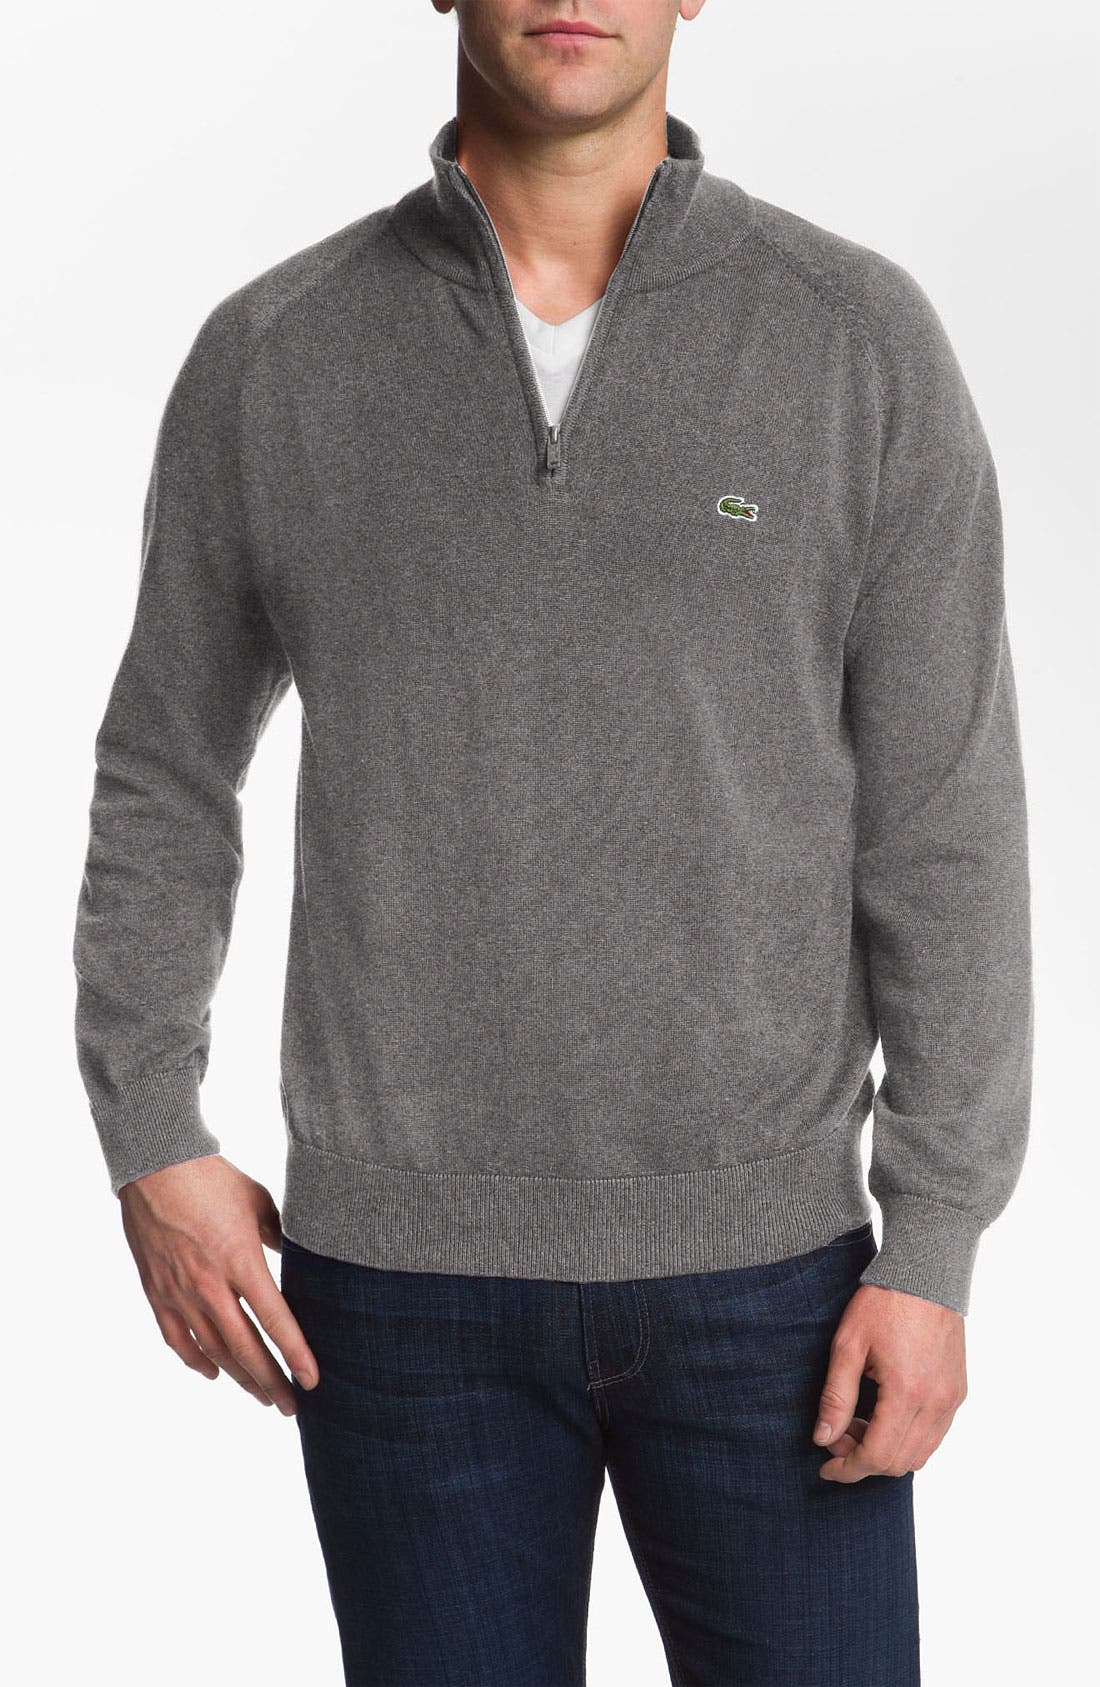 Main Image - Lacoste Quarter Zip Regular Fit Sweater